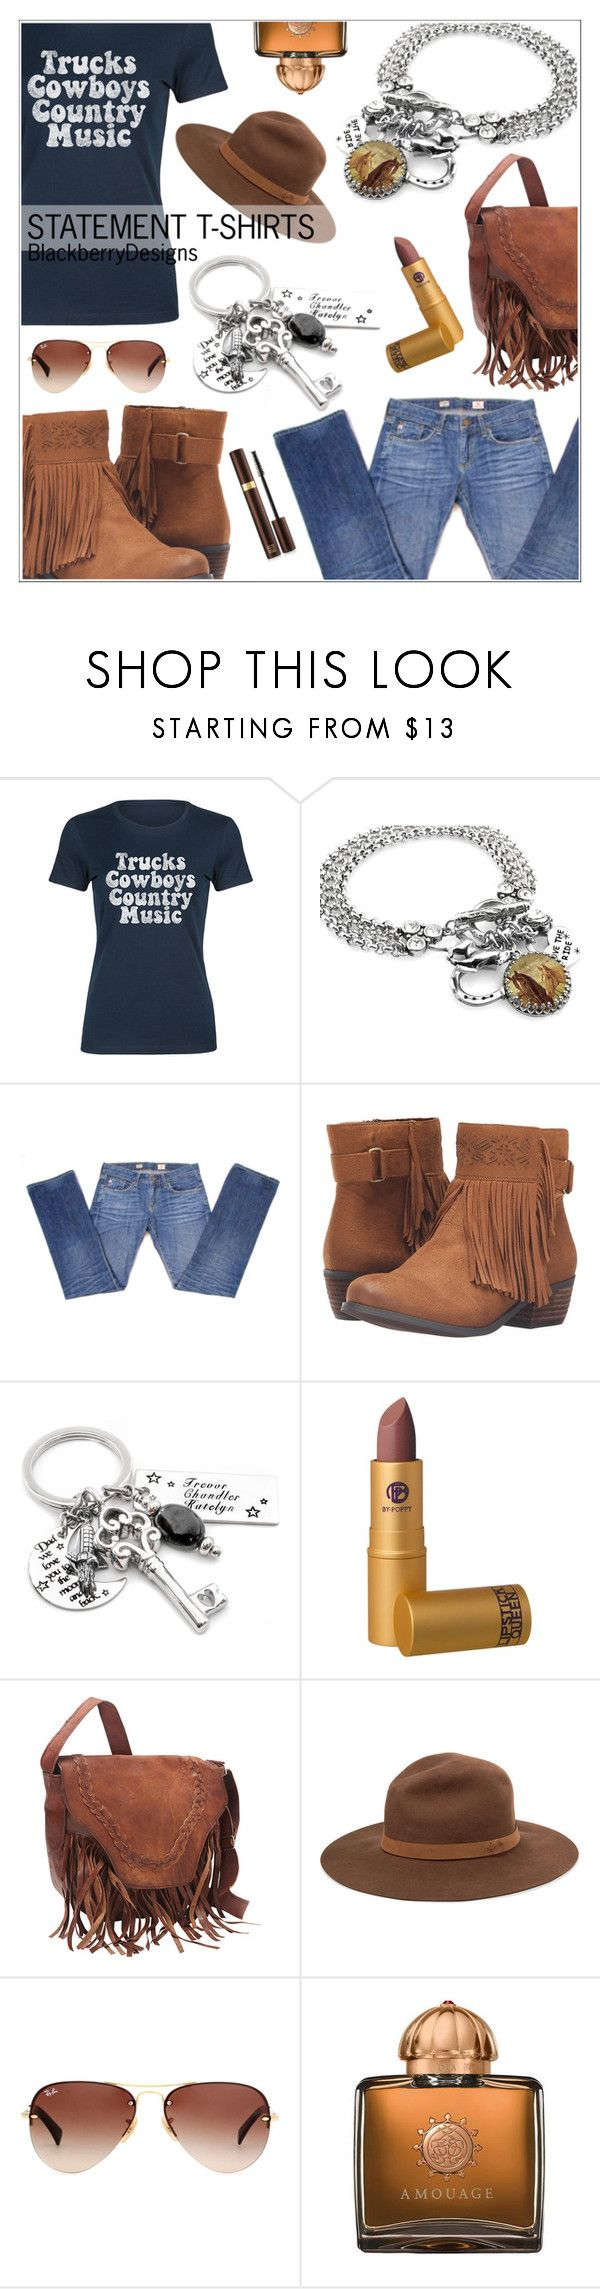 """""""Make A Statement"""" by shambala-379 ❤ liked on Polyvore featuring Rodeo Rags, AG Adriano Goldschmied, Not Rated, Lipstick Queen, SHARO, rag & bone, Ray-Ban, AMOUAGE, Tom Ford and country"""